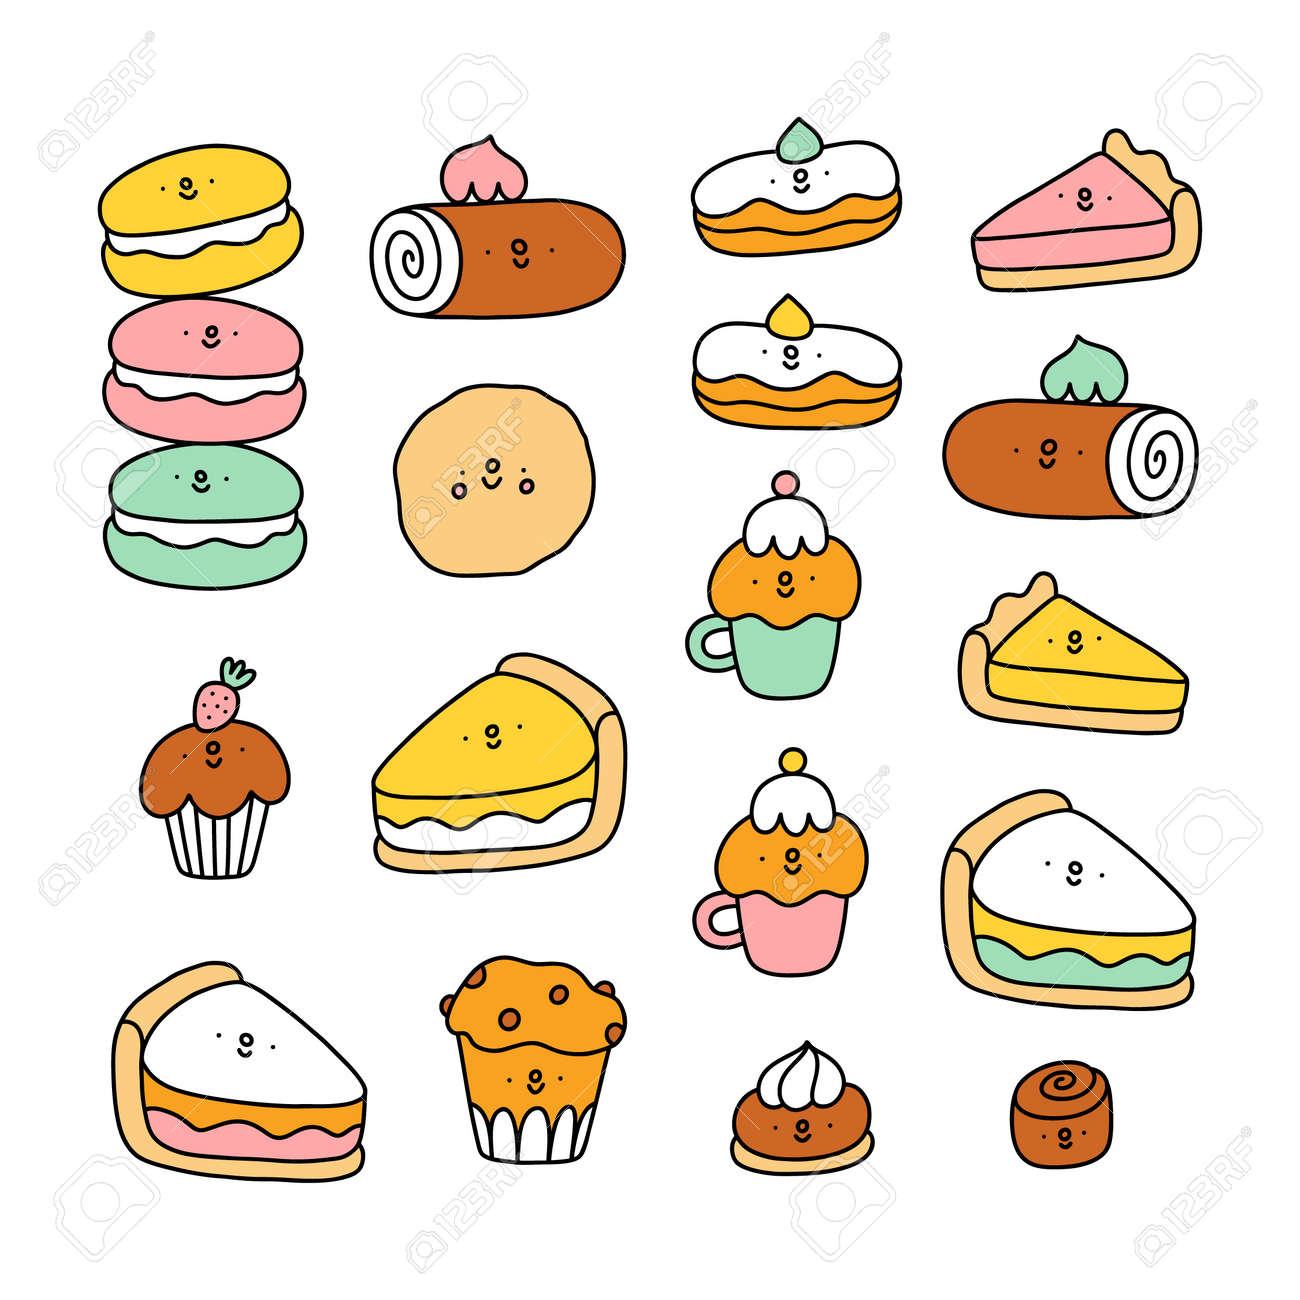 Cute pastry characters, cartoon macarons, cupcakes and cookies illustration collection - 164484653